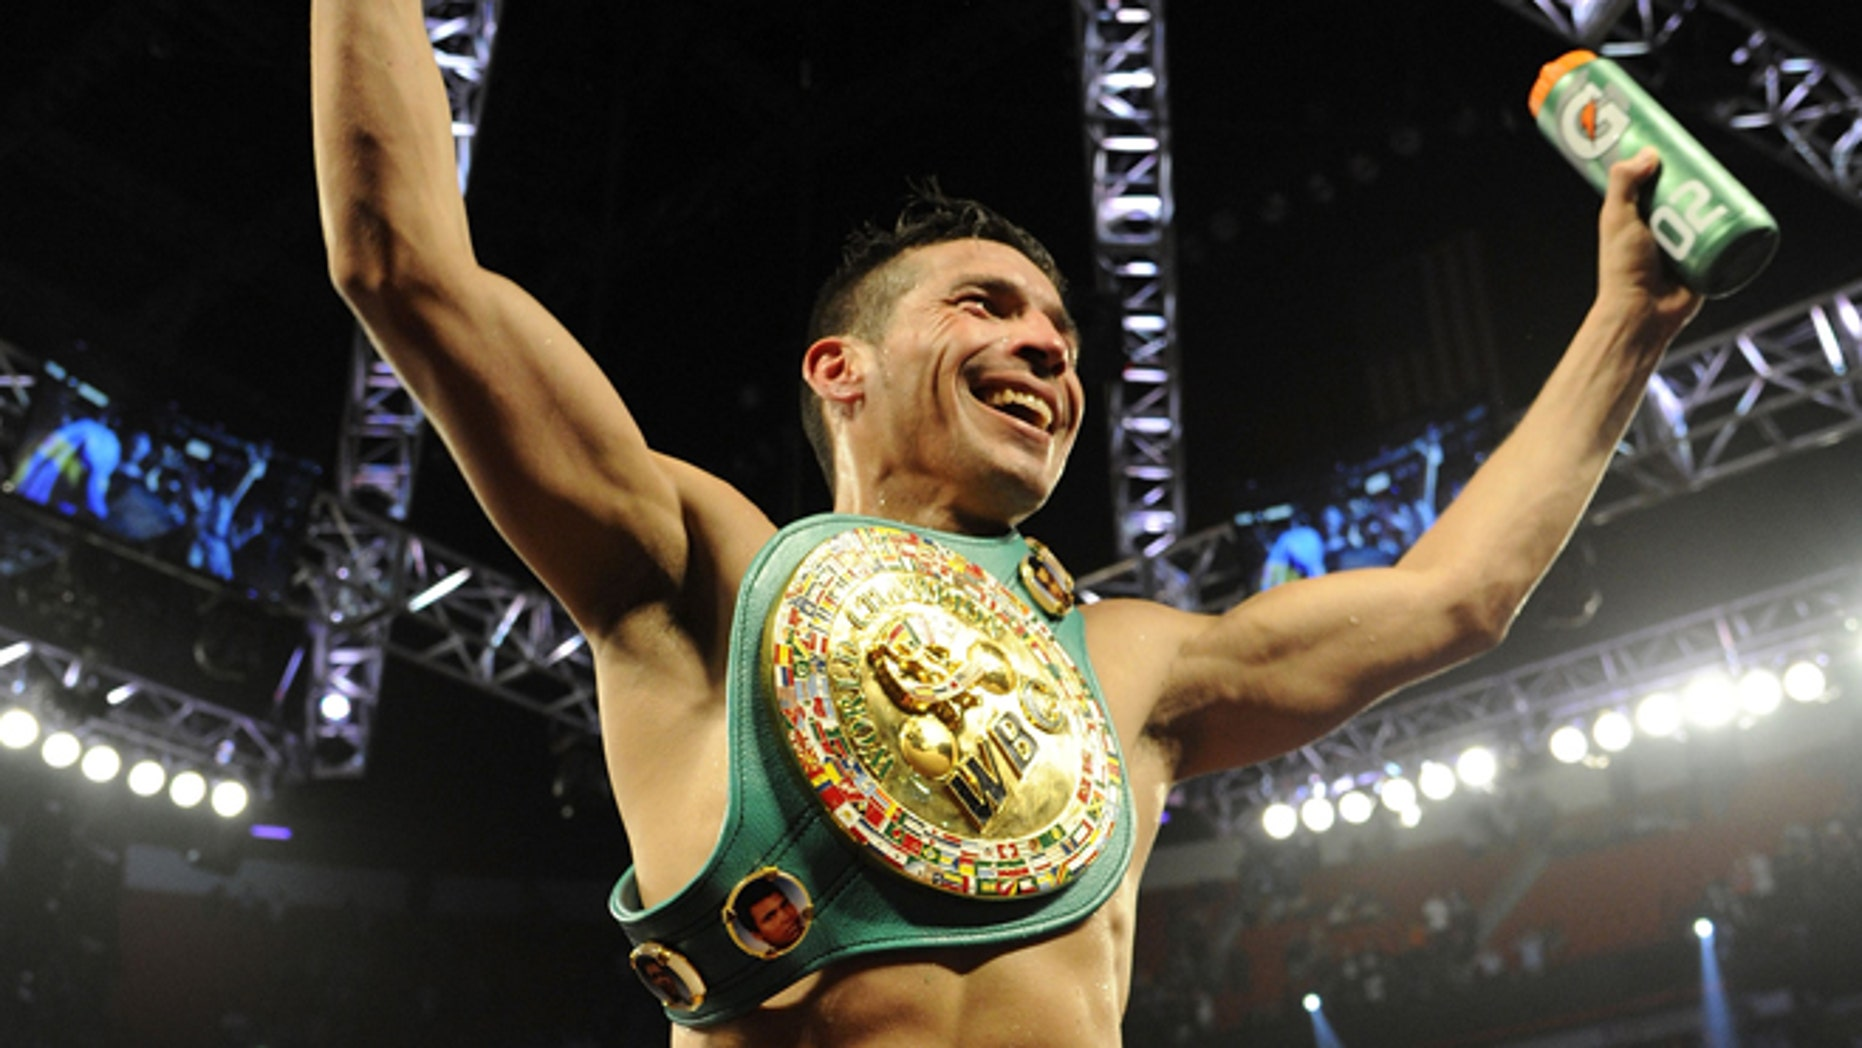 LAS VEGAS, NV - SEPTEMBER 15:  Sergio Martinez celebrates after defeating Julio Cesar Chavez Jr. in twelve rounds by unanimous decision for their WBC middleweight title fight at the Thomas & Mack Center on September 15, 2012 in Las Vegas, Nevada.  (Photo by Jeff Bottari/Getty Images)